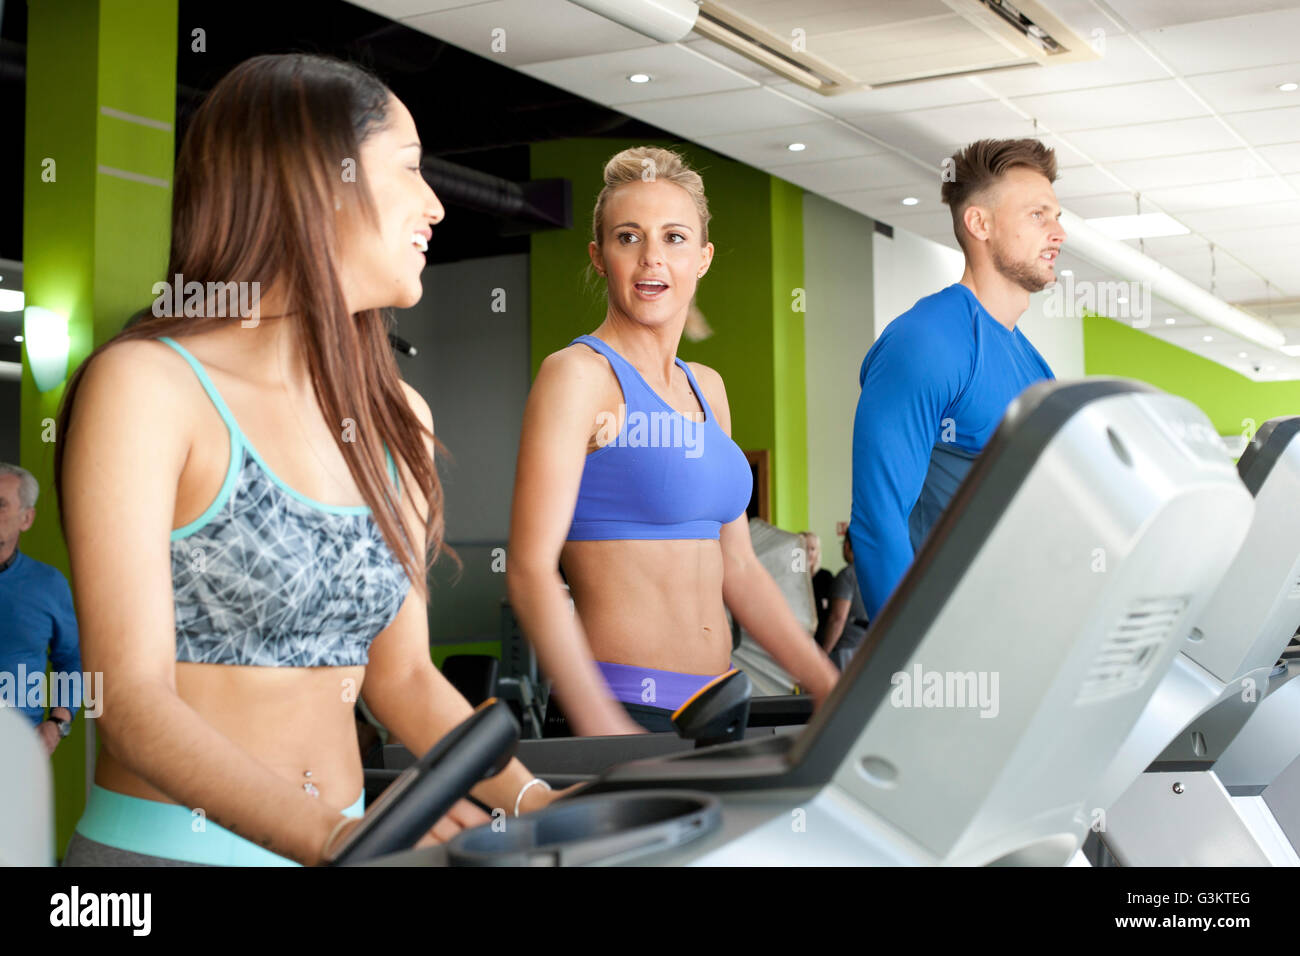 People at gym using exercise machines chatting - Stock Image